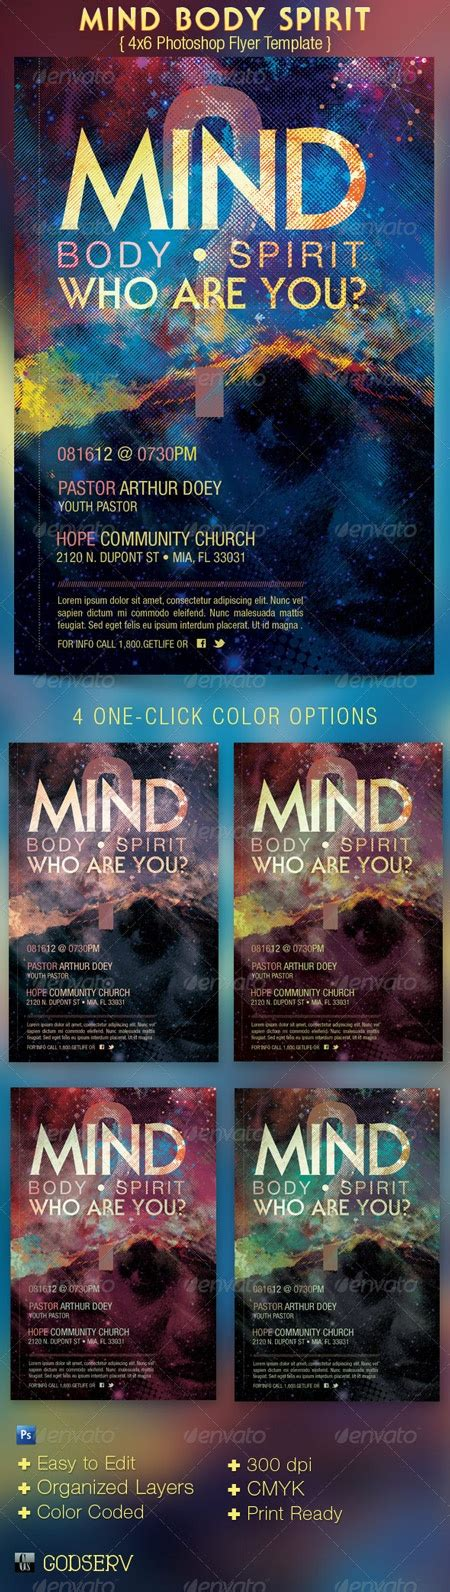 graphicriver mind body spirit church flyer template psd